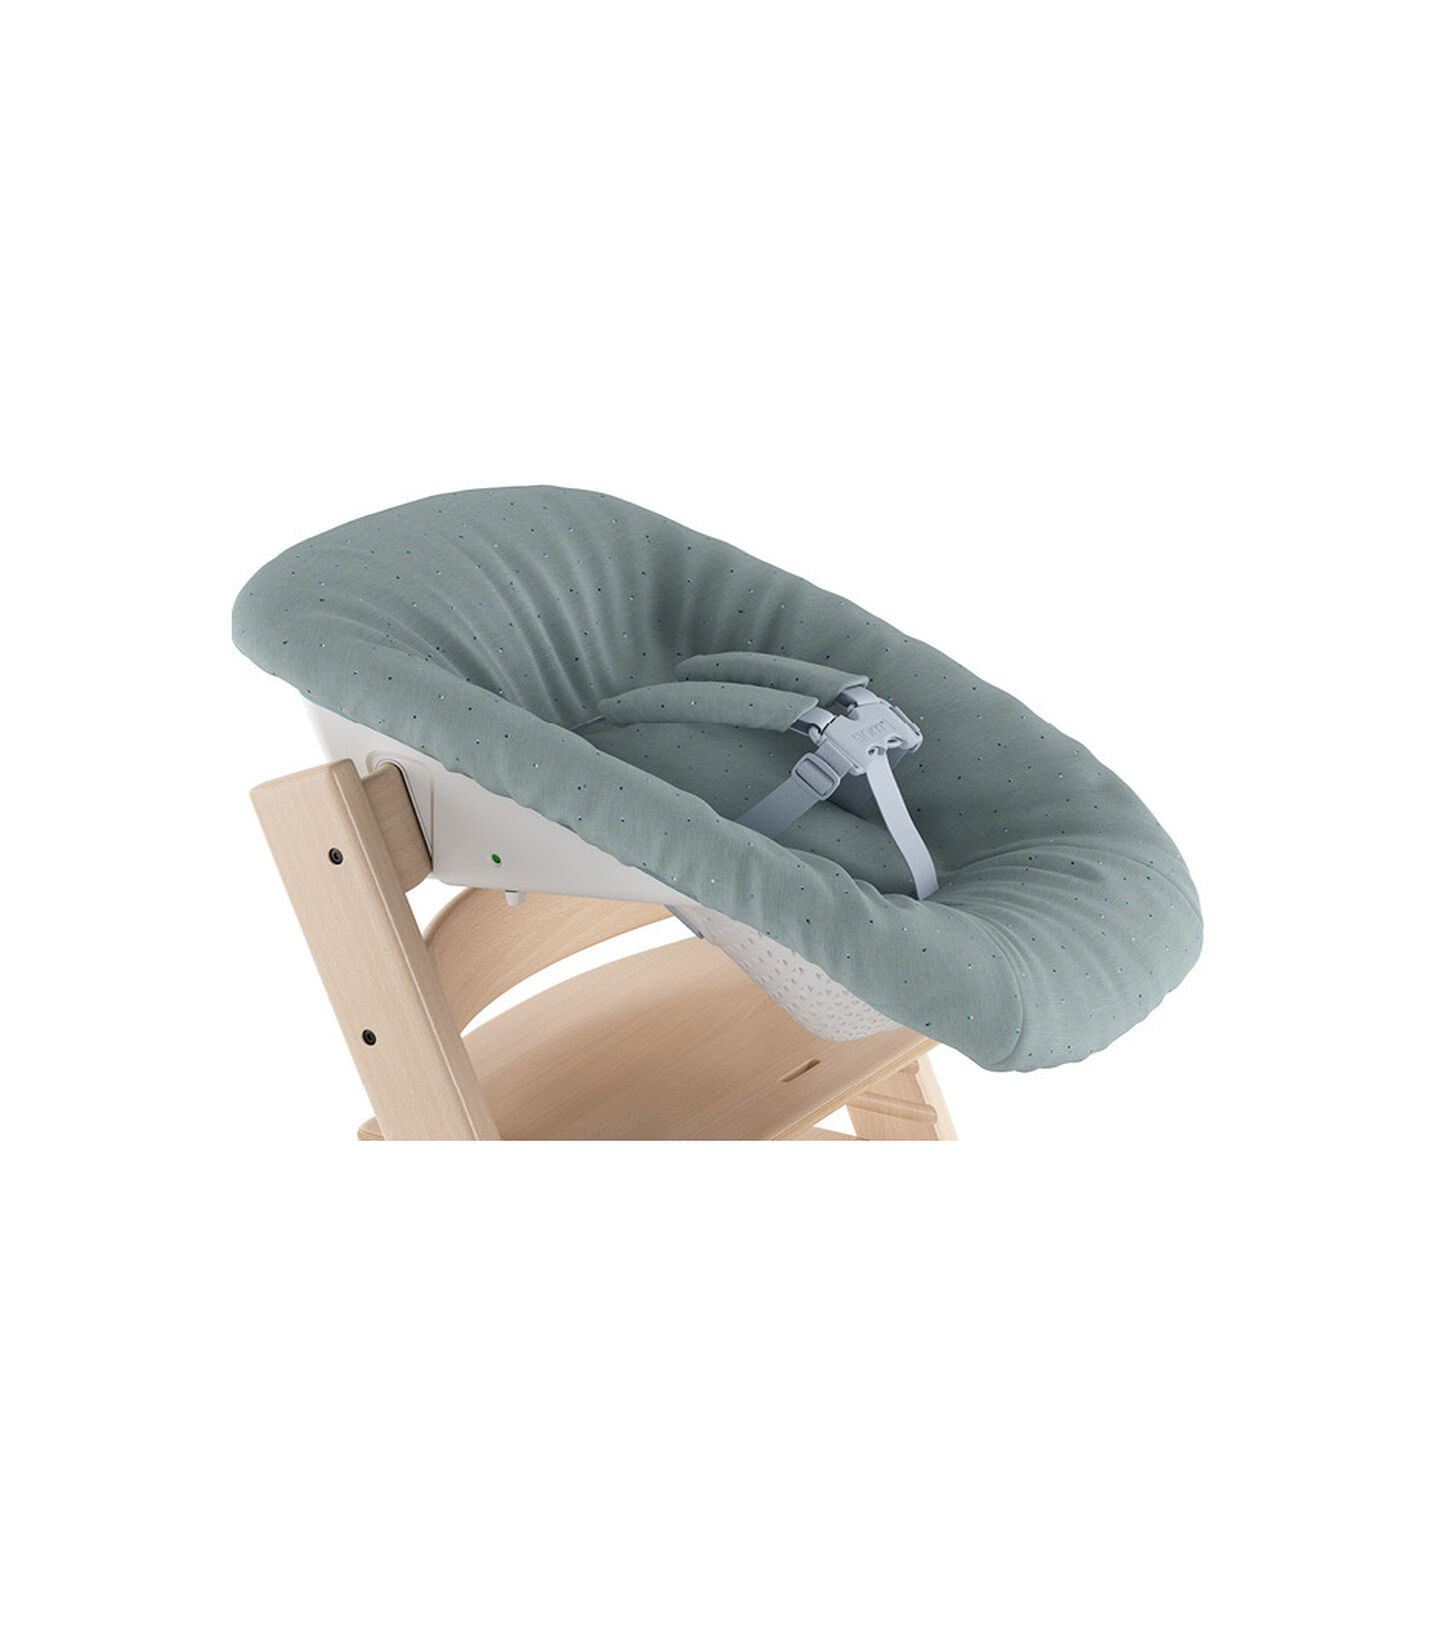 Tripp Trapp® Natural and Tripp Trapp® Newborn Set with Jade Confetti  textiles. Active position.